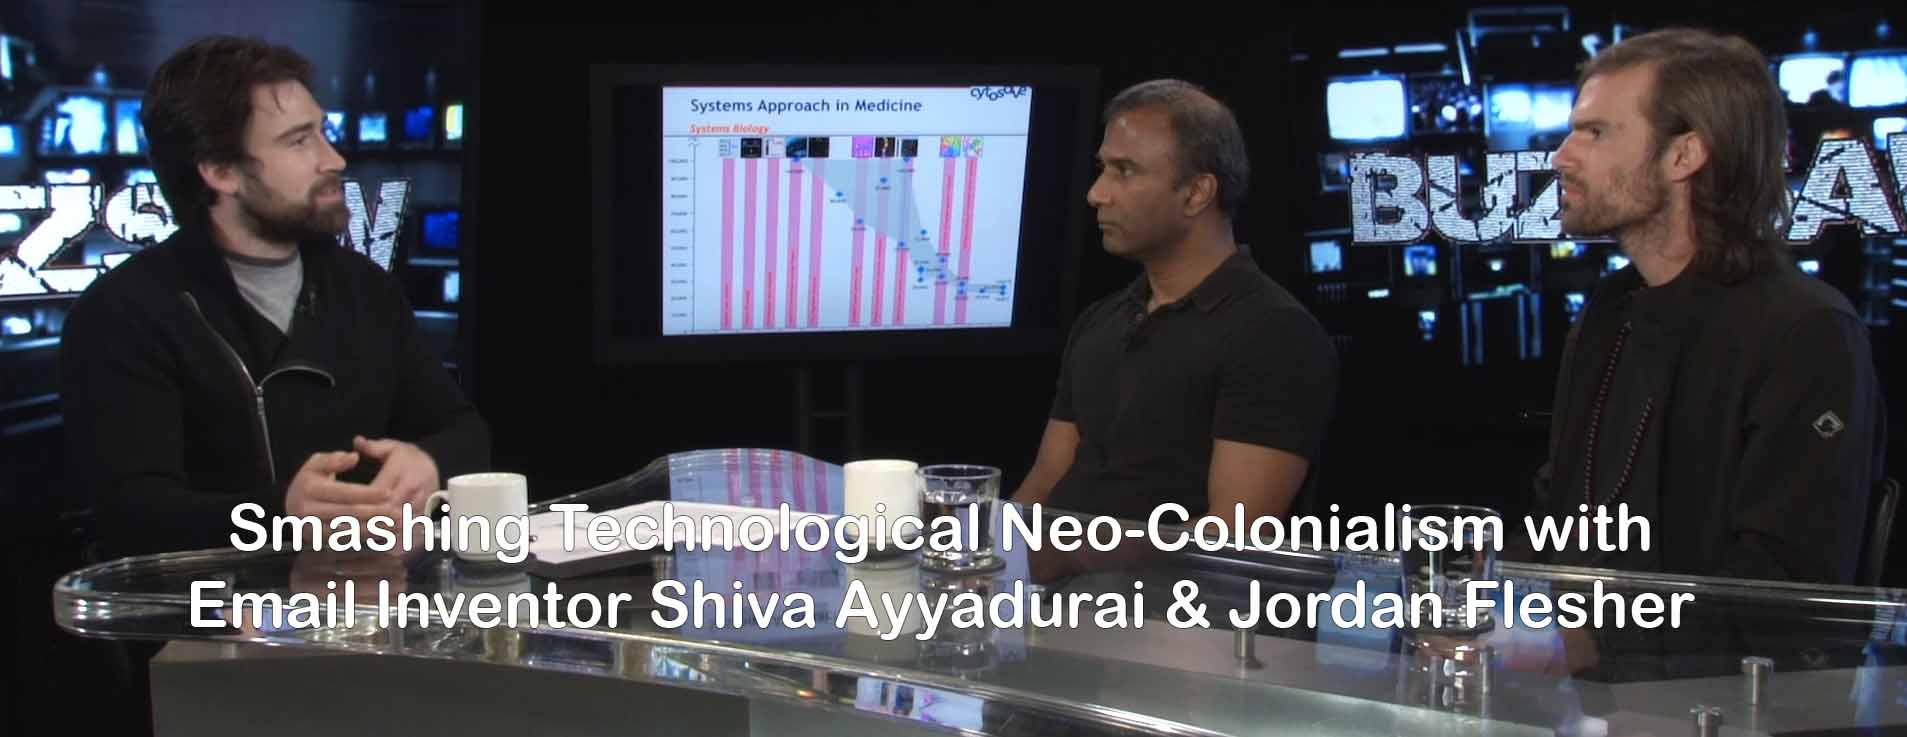 Smashing Technological Neo-Colonialism With Email Inventor Shiva Ayyadurai & Jordan Flesher